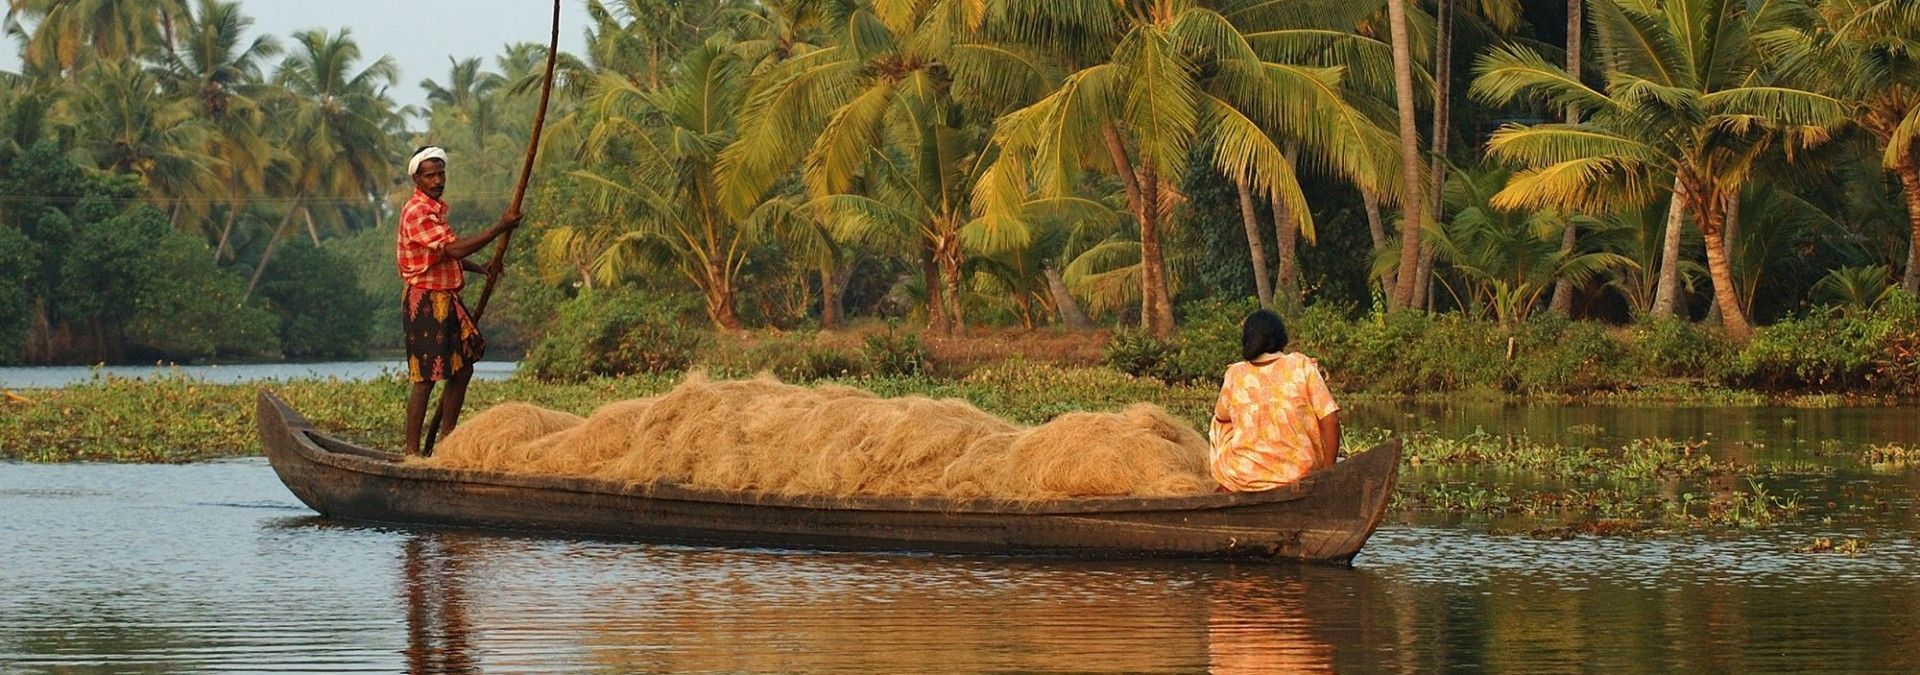 Serene backwaters of Kerala